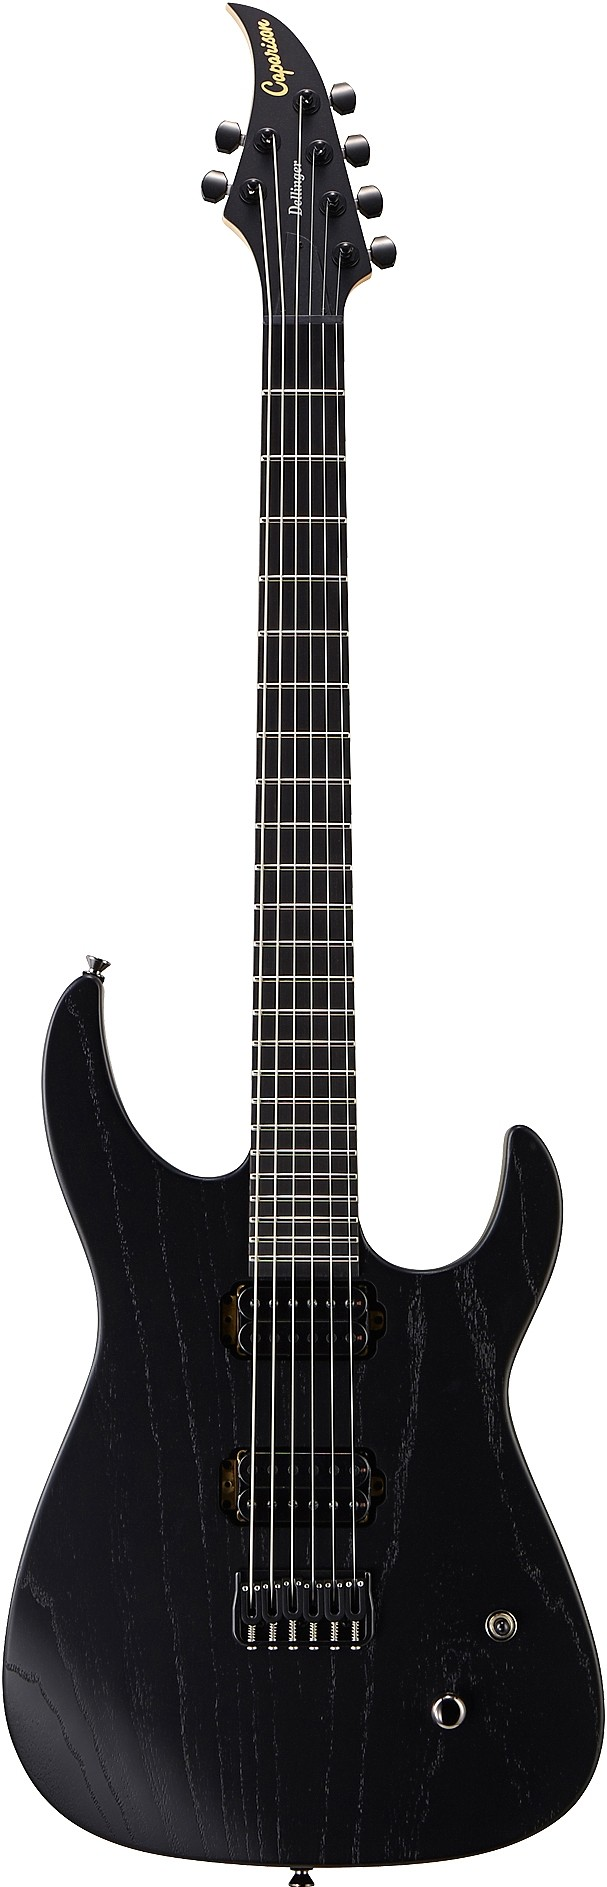 Dellinger II FX-AM by Caparison